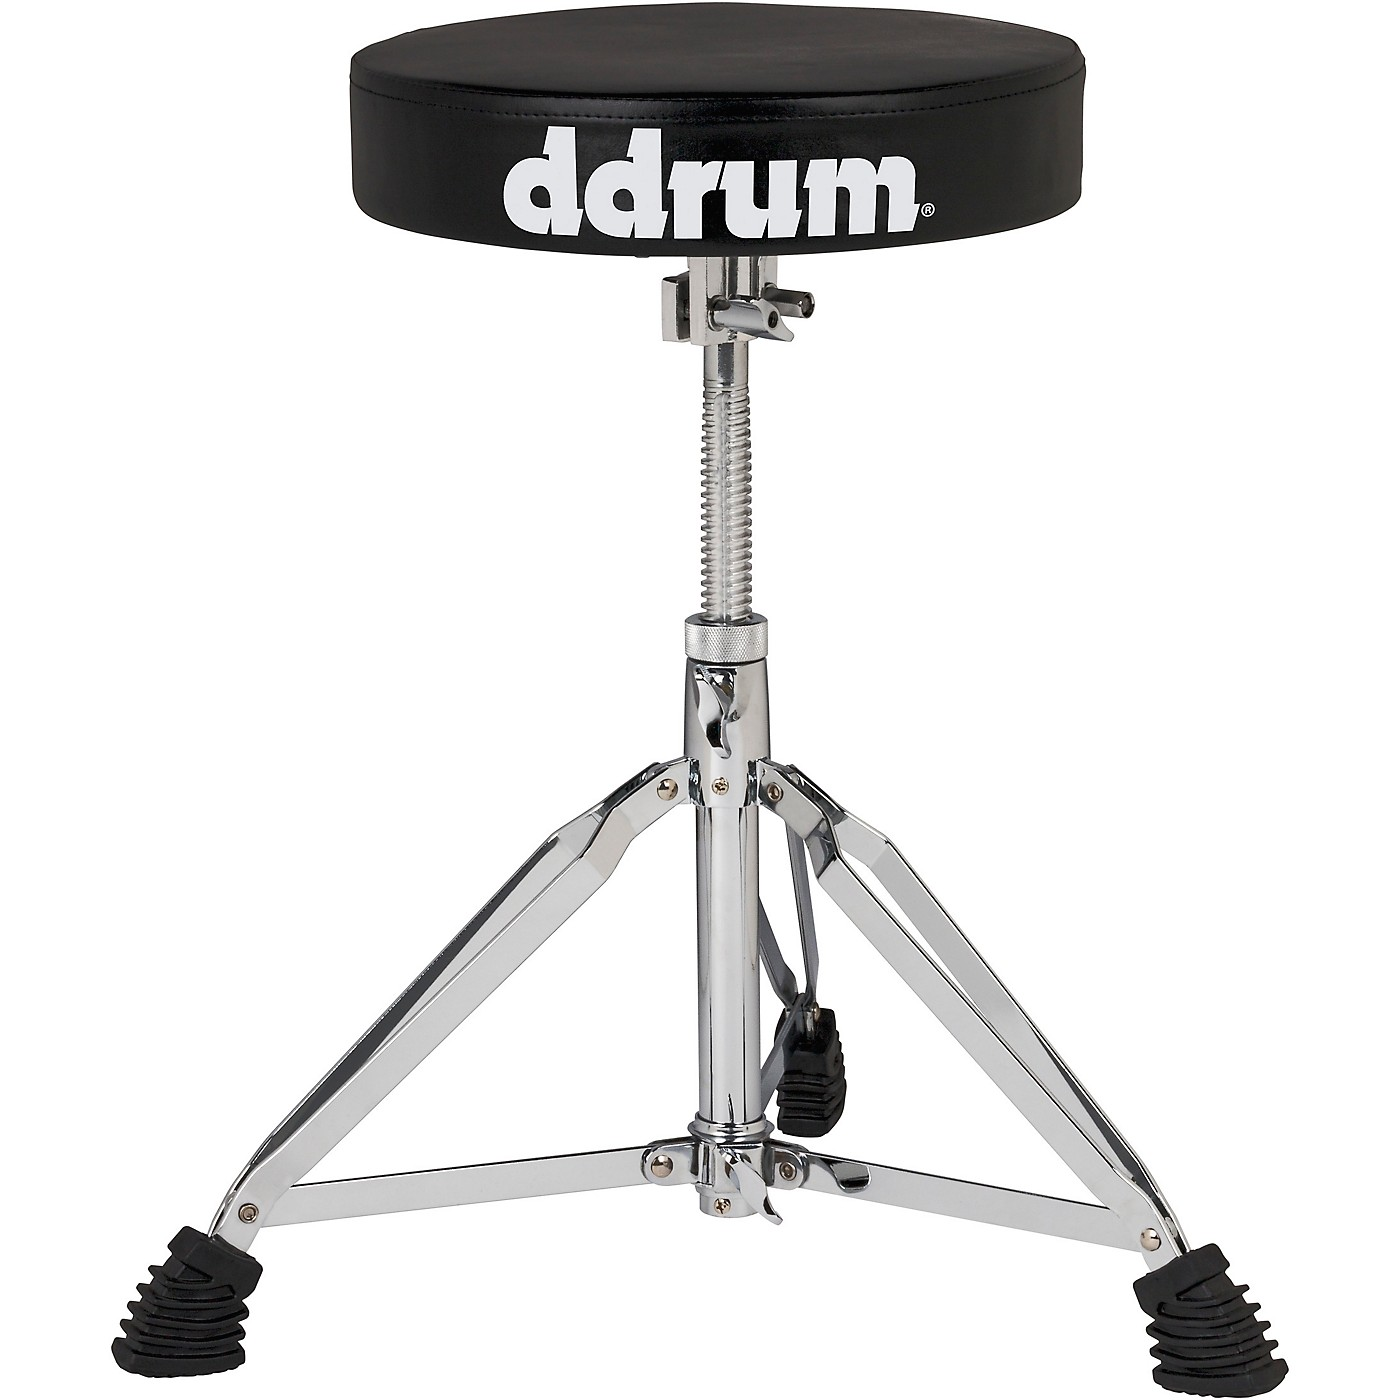 ddrum RX Series Throne with Swivel Adjustment thumbnail